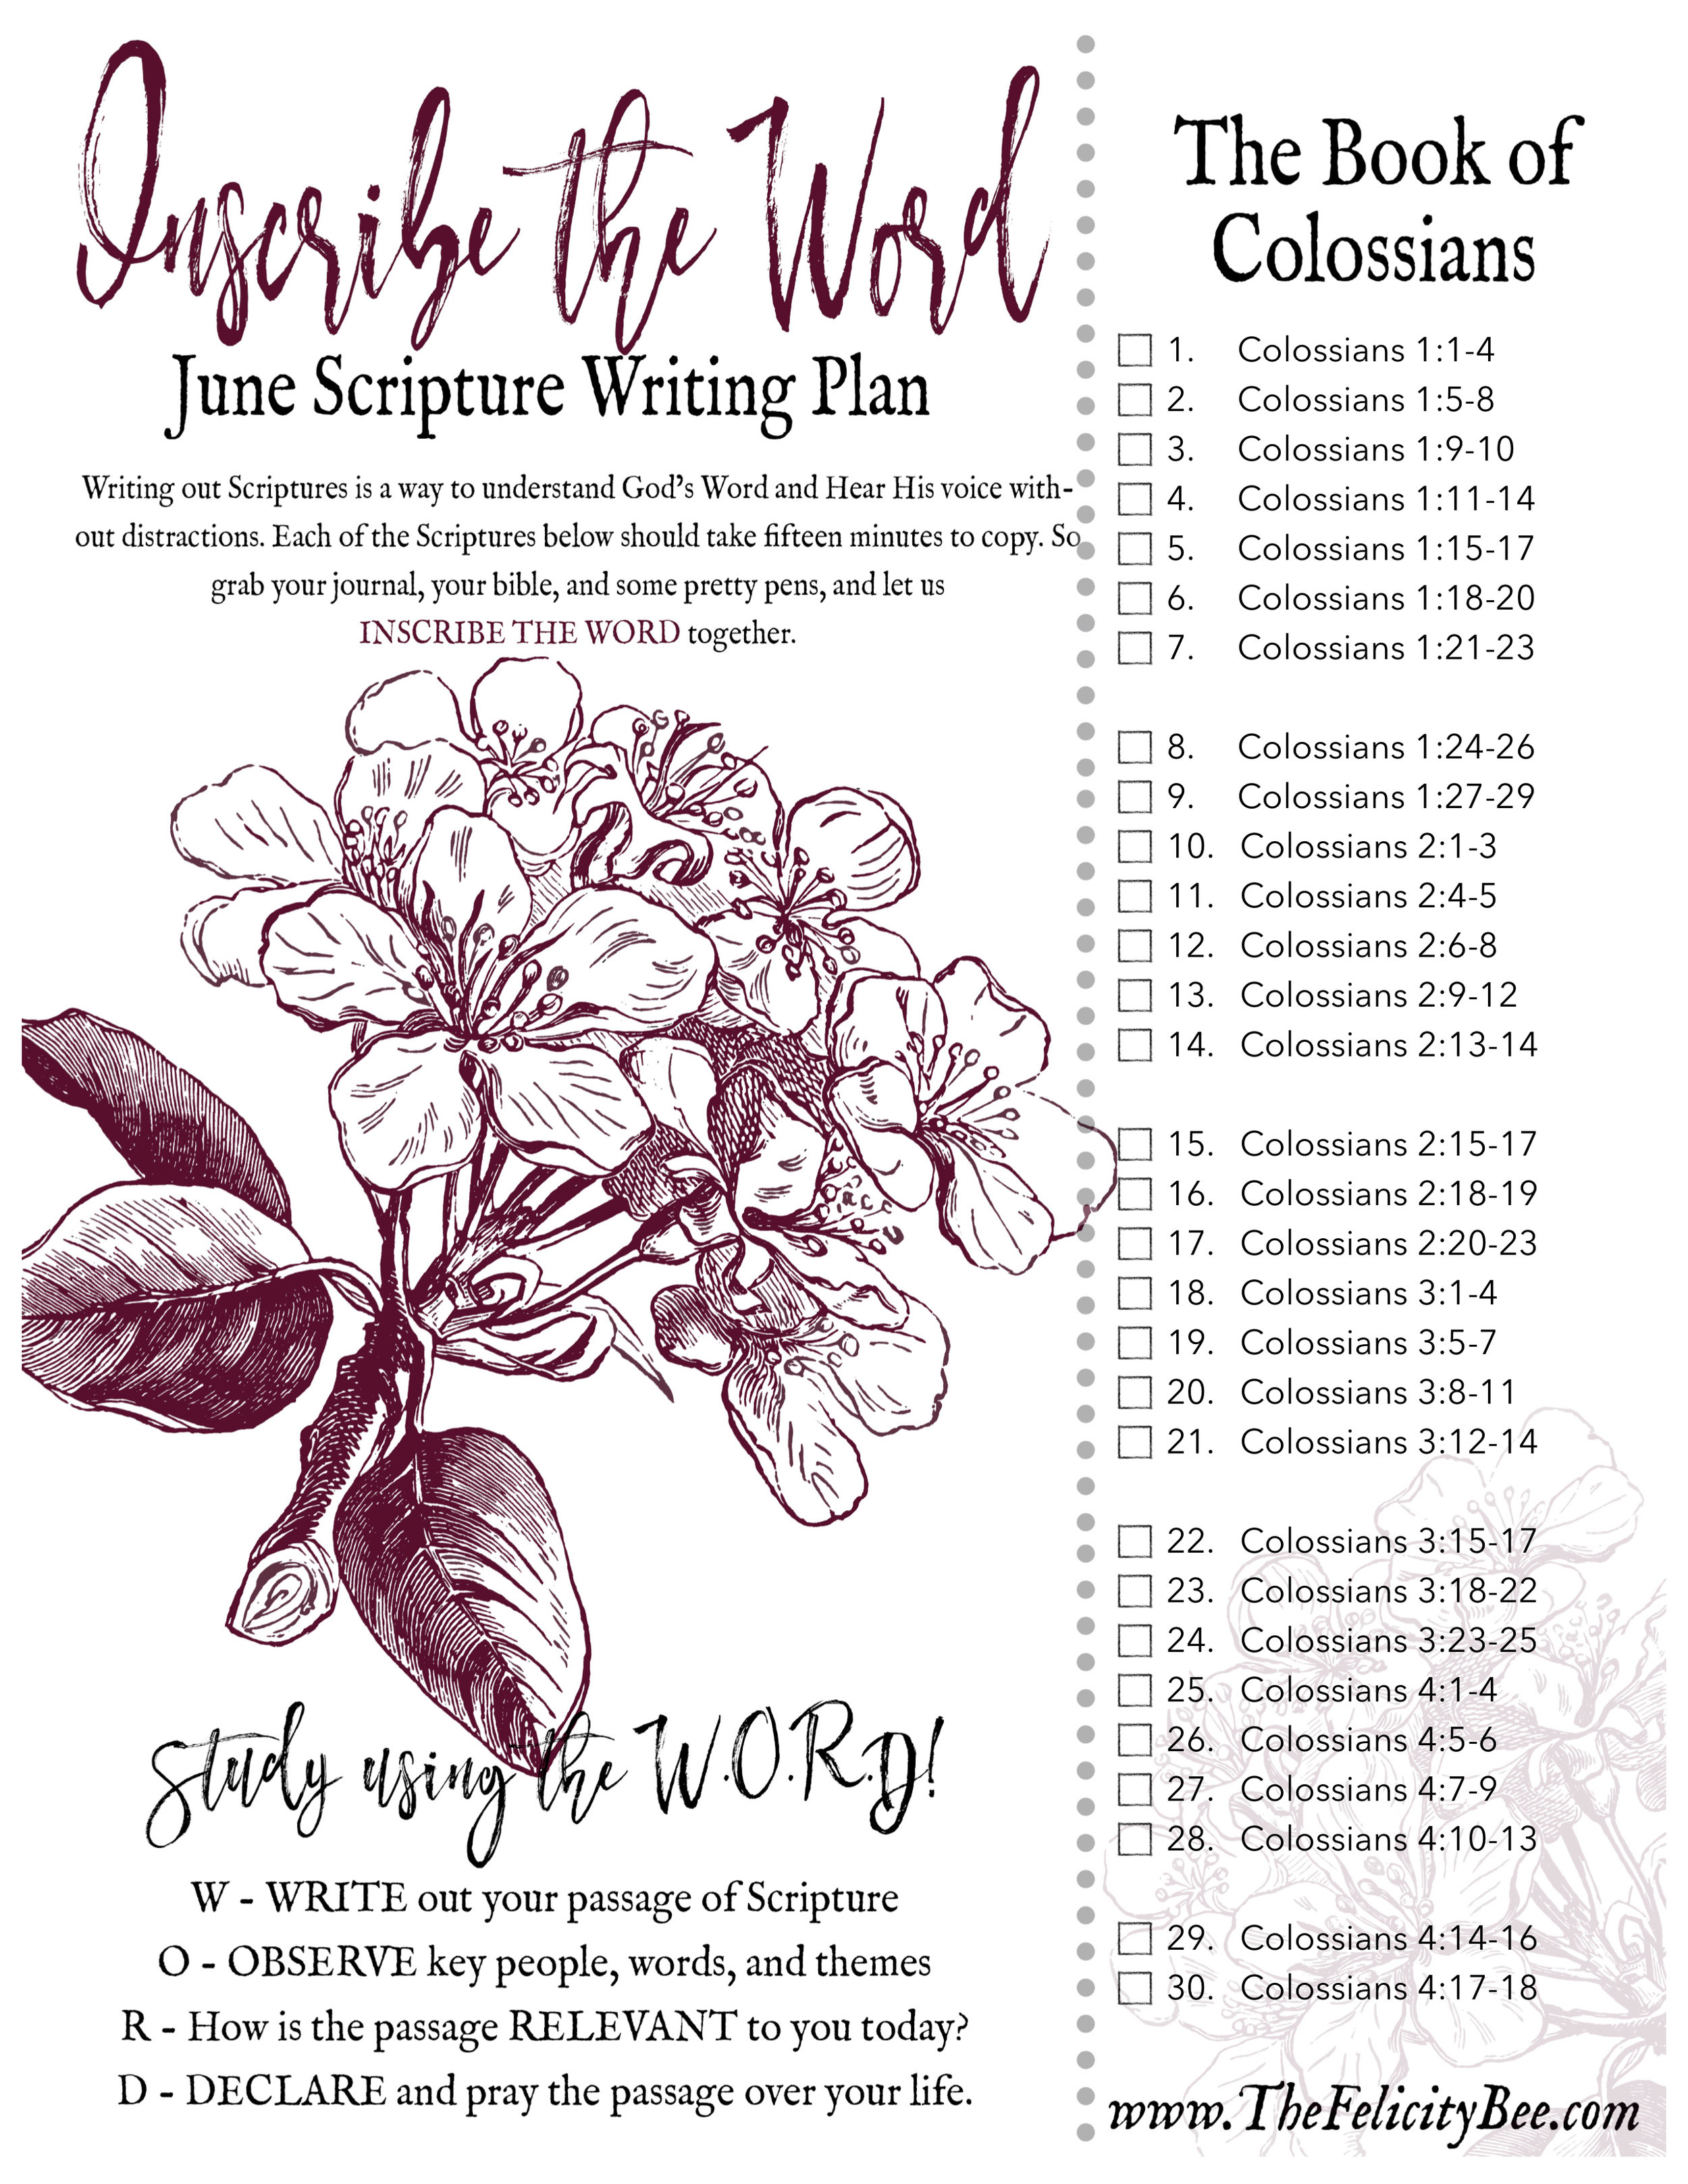 Join us this June as we Inscribe the BOOK OF COLOSSIANS for this months Scripture Writing Plan. A wonderful plan to remind us of Christ's sovereignty and sufficiency in our lives!